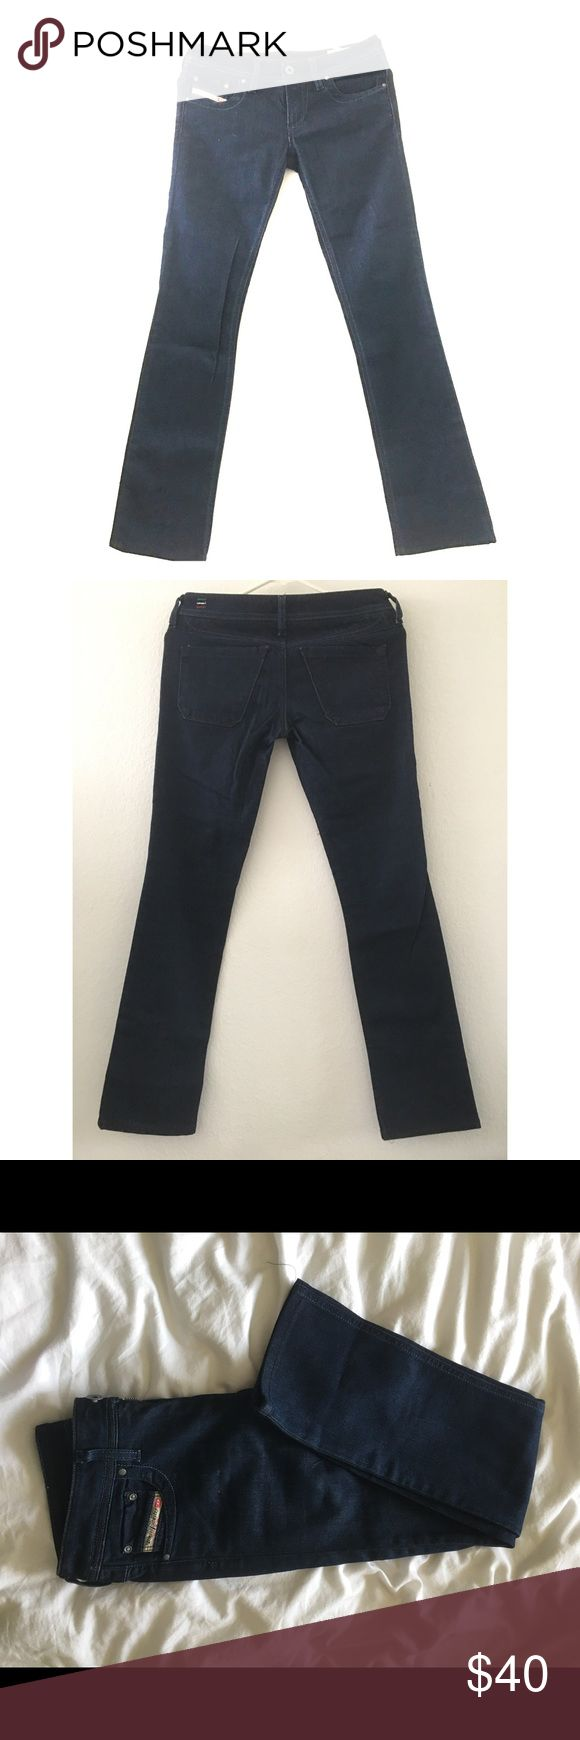 Diesel Dark Blue Jeans Like New Diesel brand jeans Stretch dark blue, like new; simple, classic jeans width 25, length 32, 80%cotton20%spandex Diesel Jeans